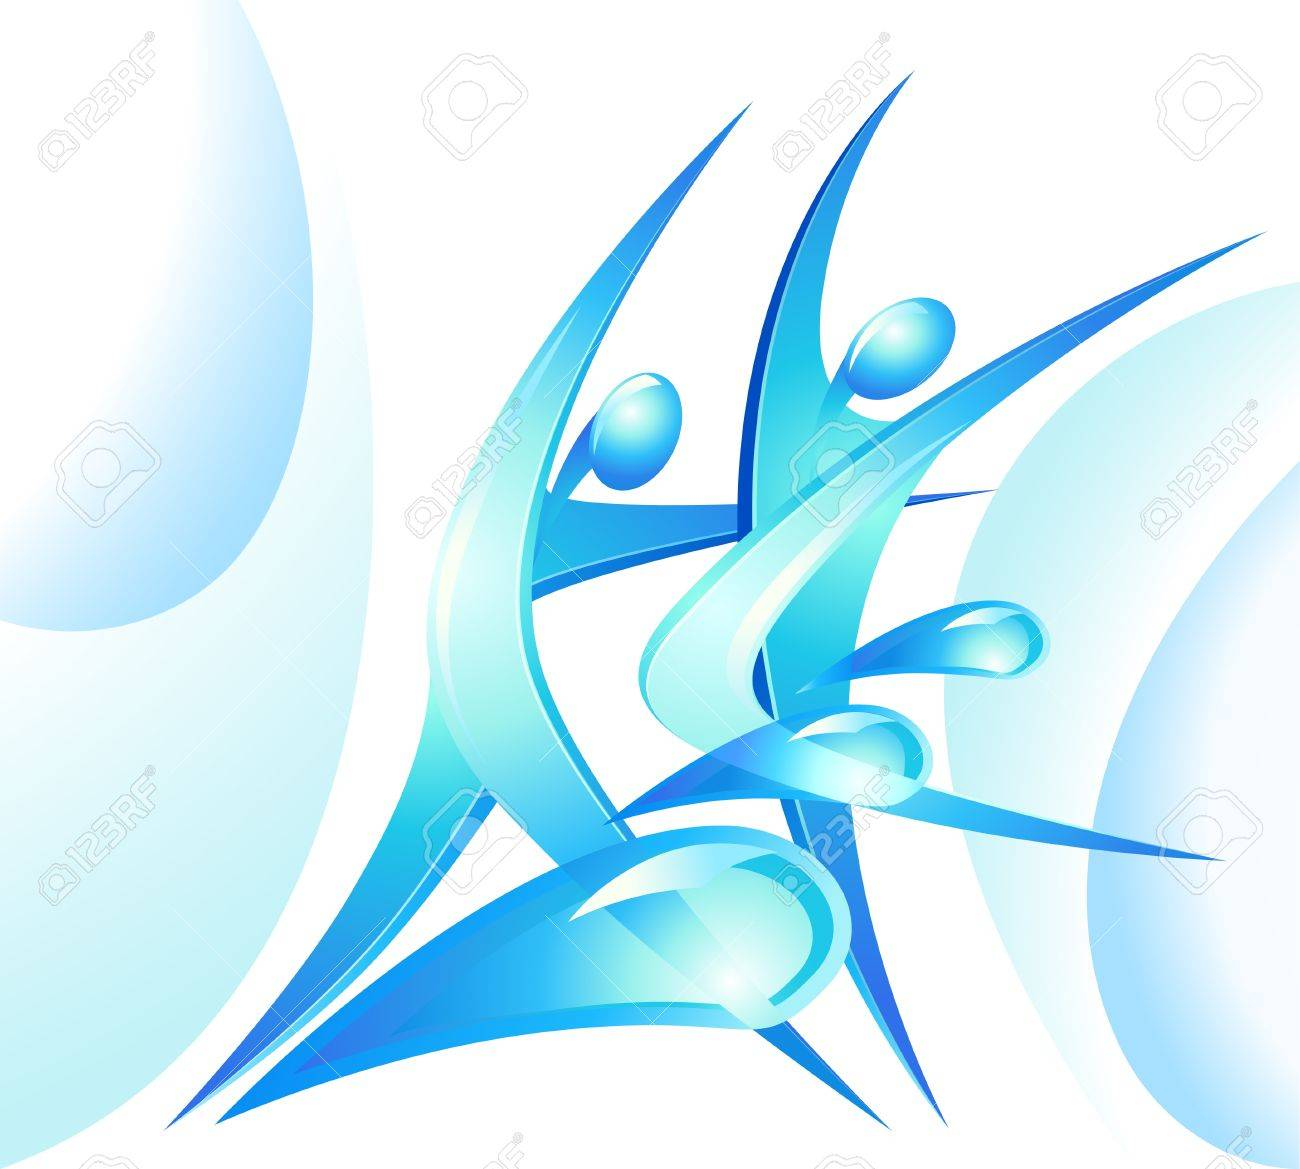 Eco-icon with blue dancers and water drops Stock Vector - 13464433